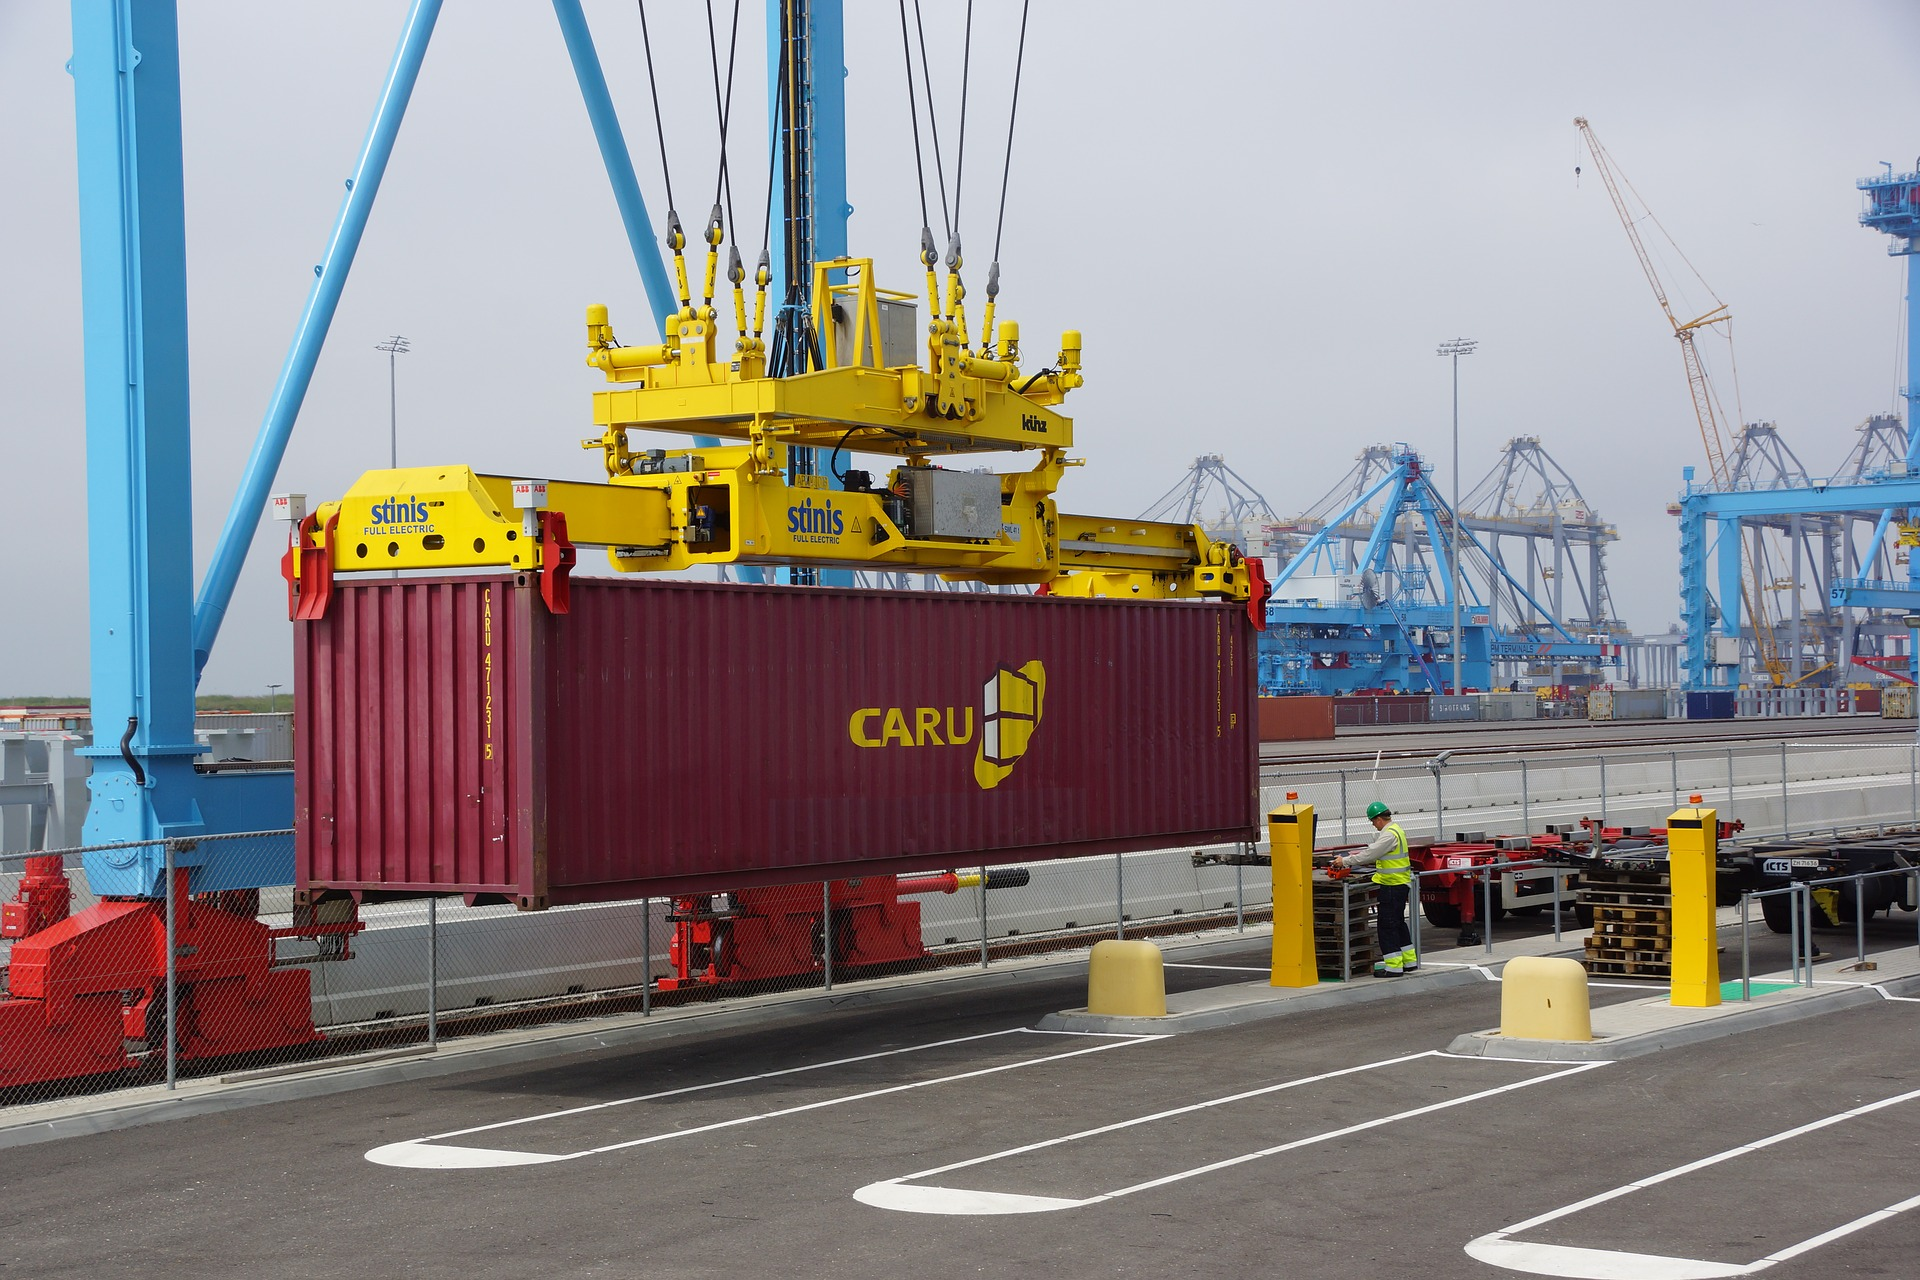 Direct Port Delivery: How is the New Import Container Clearance Process at JNPT Faring?